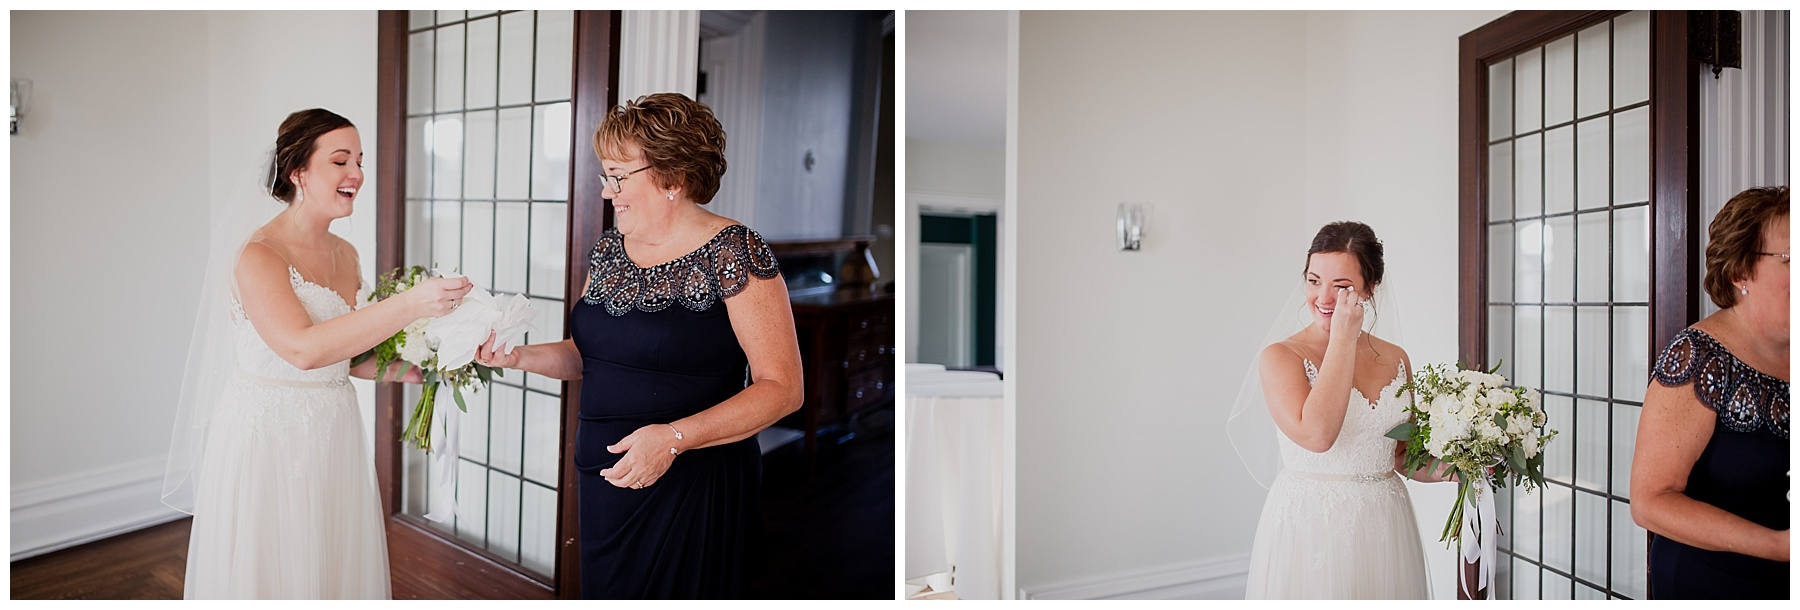 WISCONSIN WEDDING PHOTOGRAPHER -THE COVENANT AT MURRAY MANSION WEDDING-63.jpg